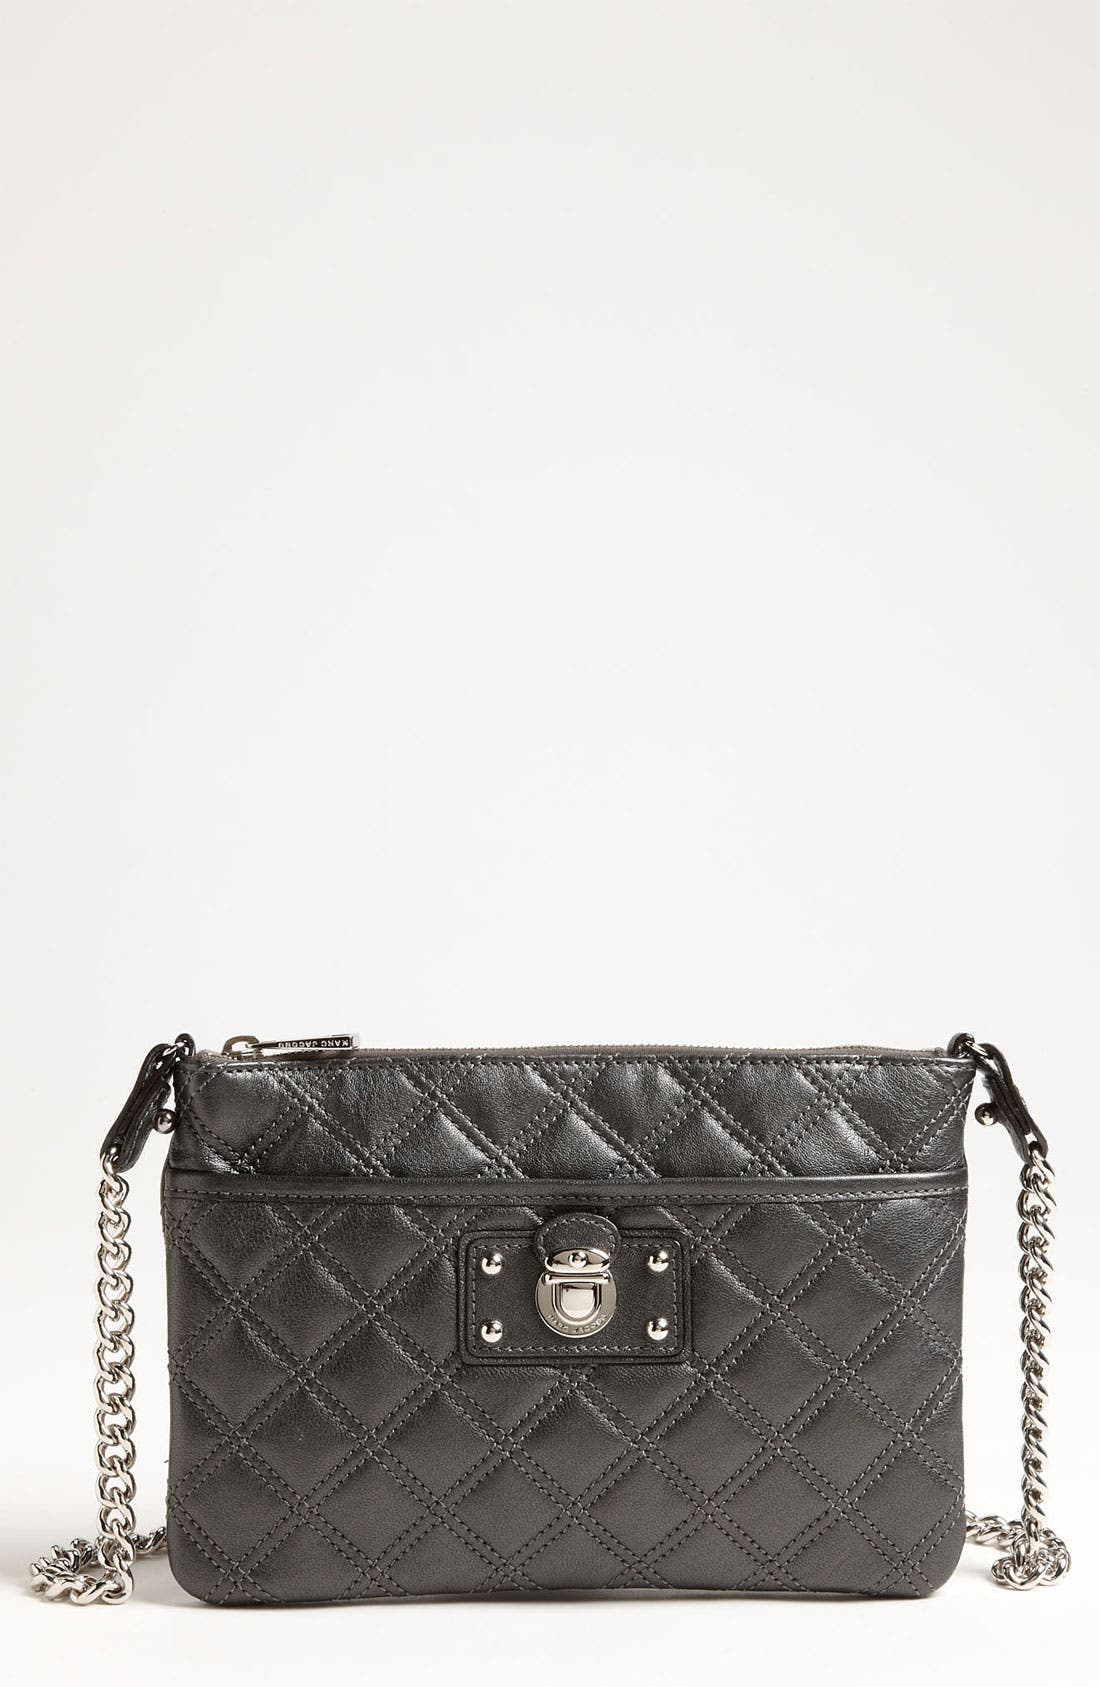 Alternate Image 1 Selected - MARC JACOBS 'Murray' Leather Crossbody Bag